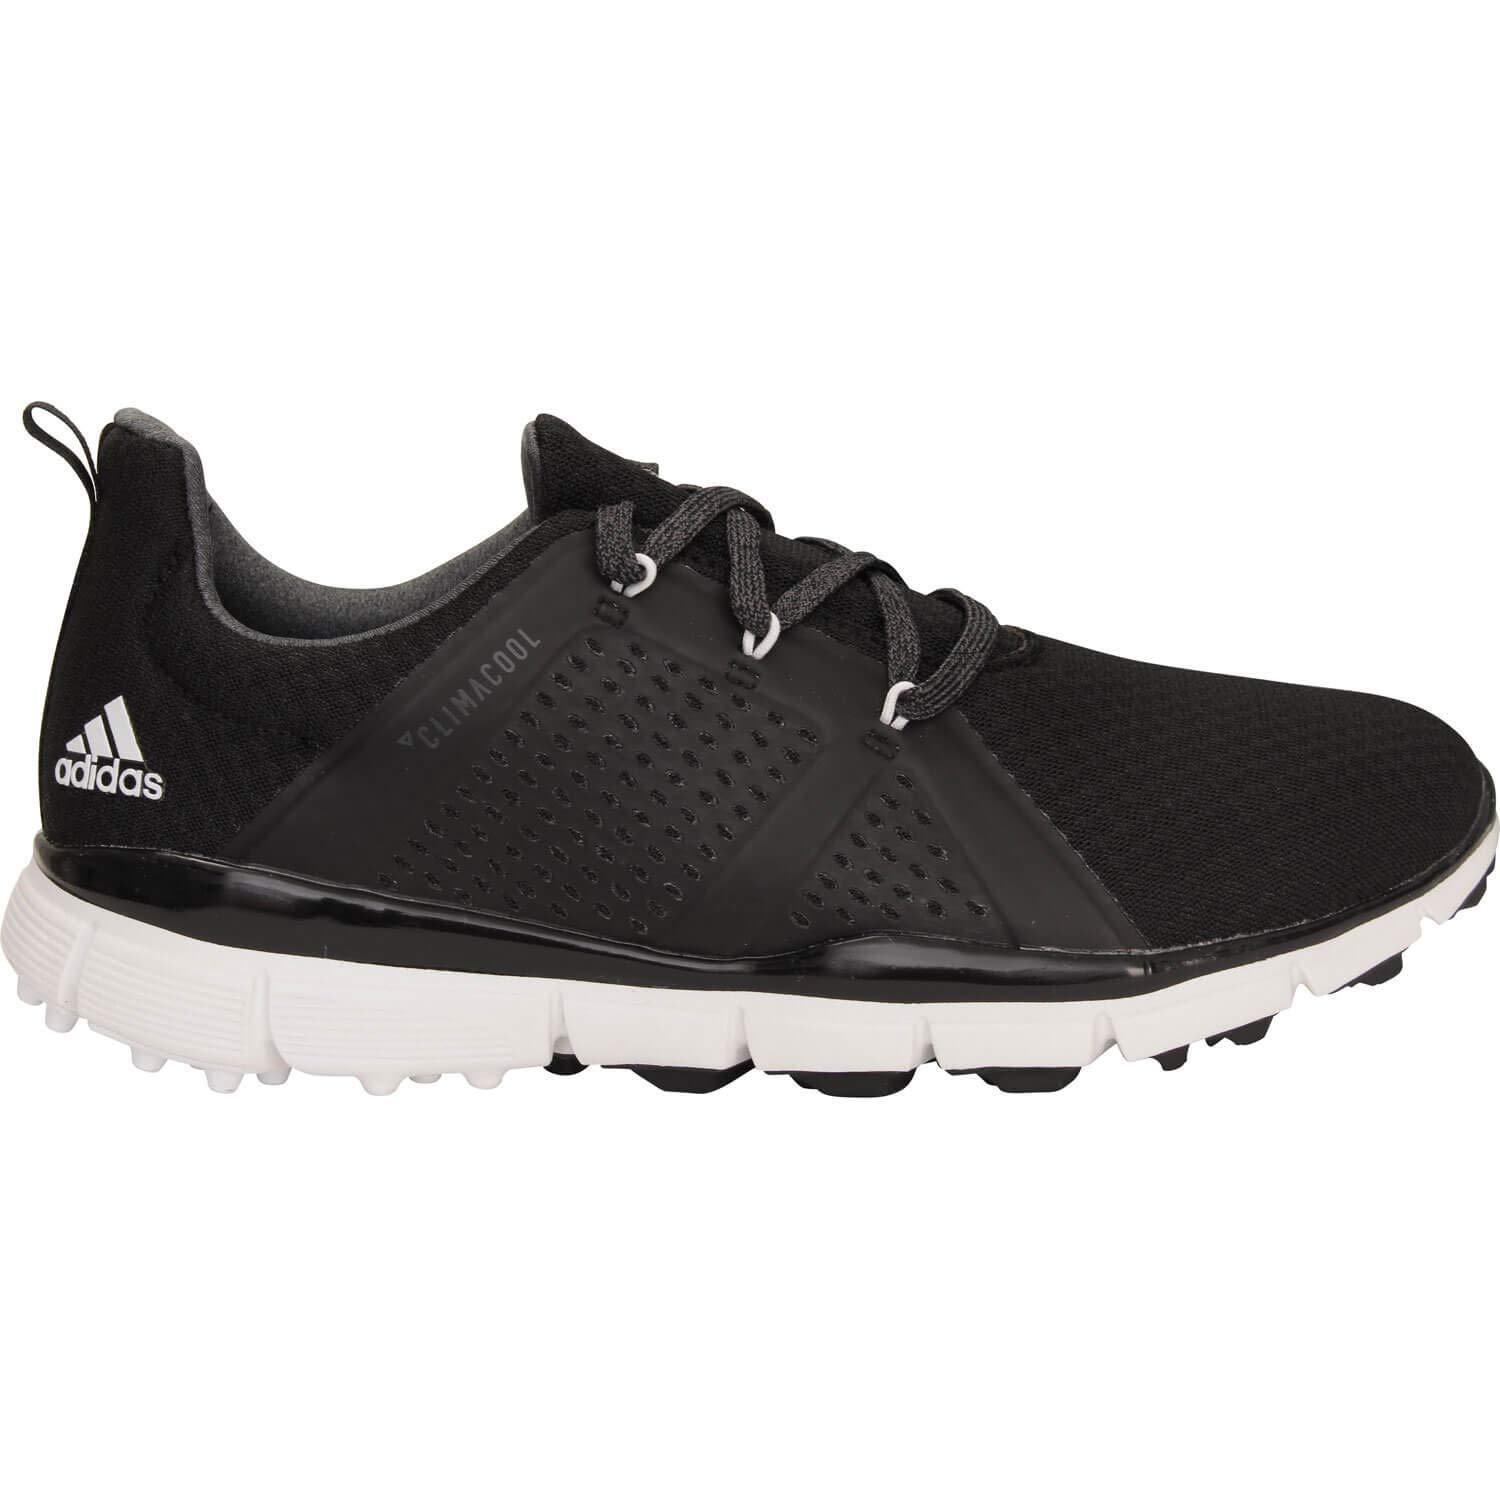 quality design ba554 5070c adidas Ladies Climacool Cage Golf Shoes Ladies Black/White ...